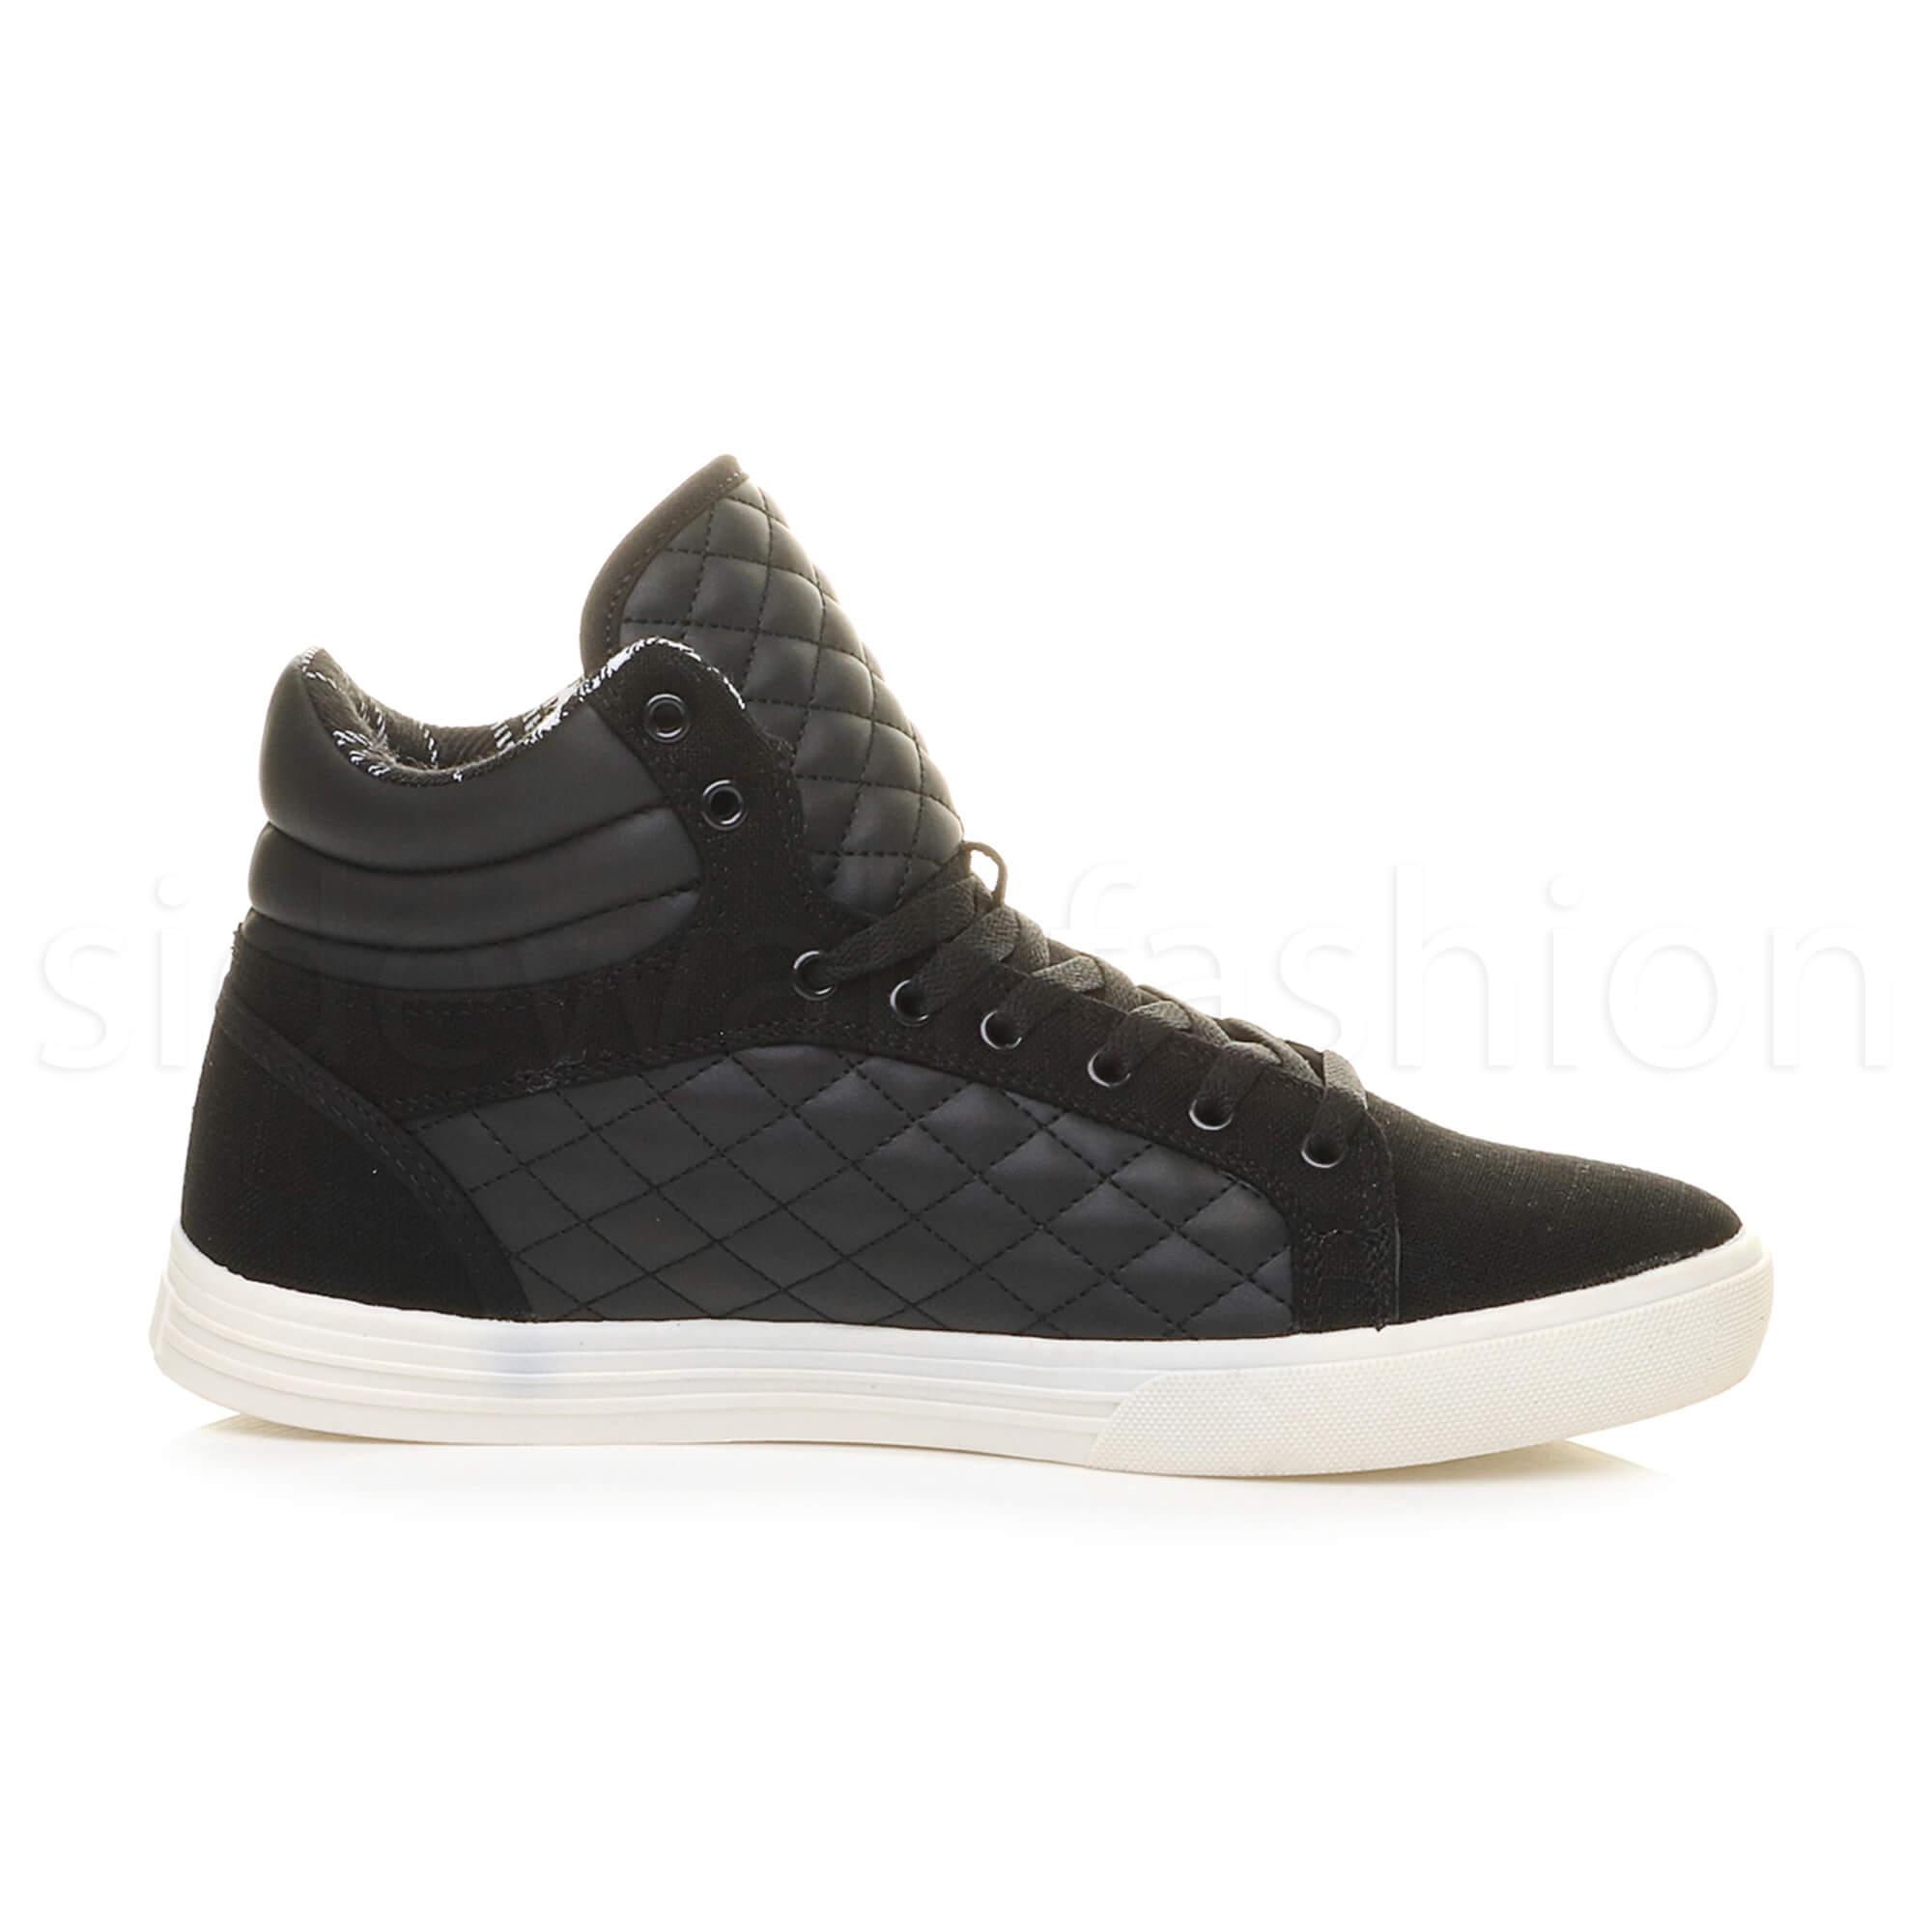 Mens-flat-lace-up-quilted-casual-hi-high-top-ankle-boots-trainers-sneakers-size thumbnail 4